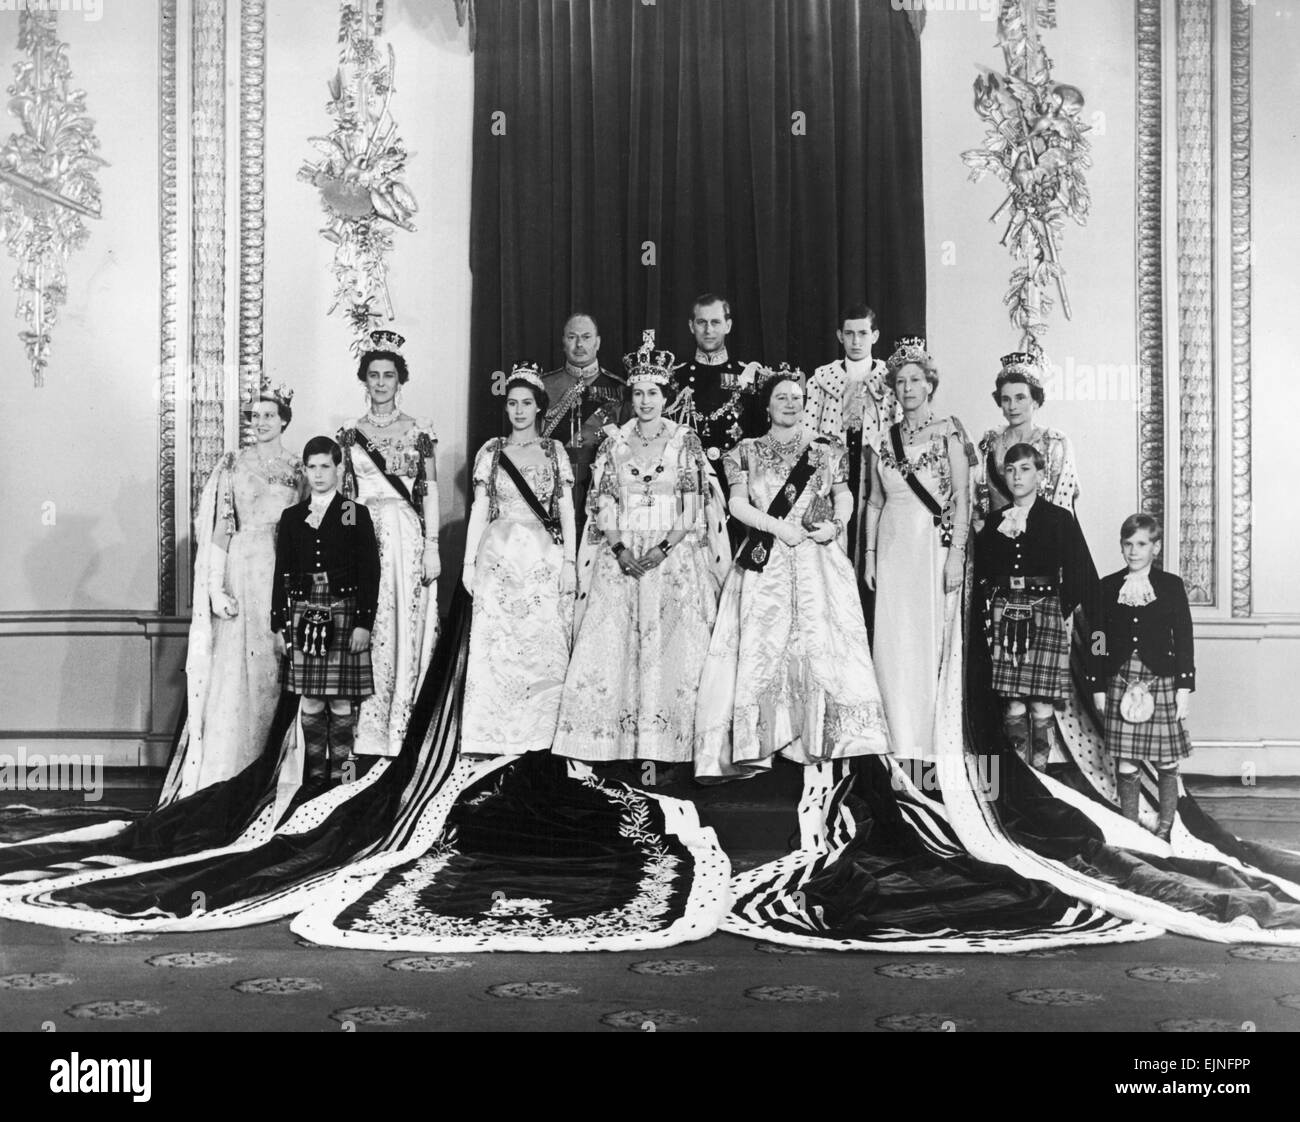 Coronation Of Queen Elizabeth Ii The Royal Family In Their Robes Stock Photo Alamy